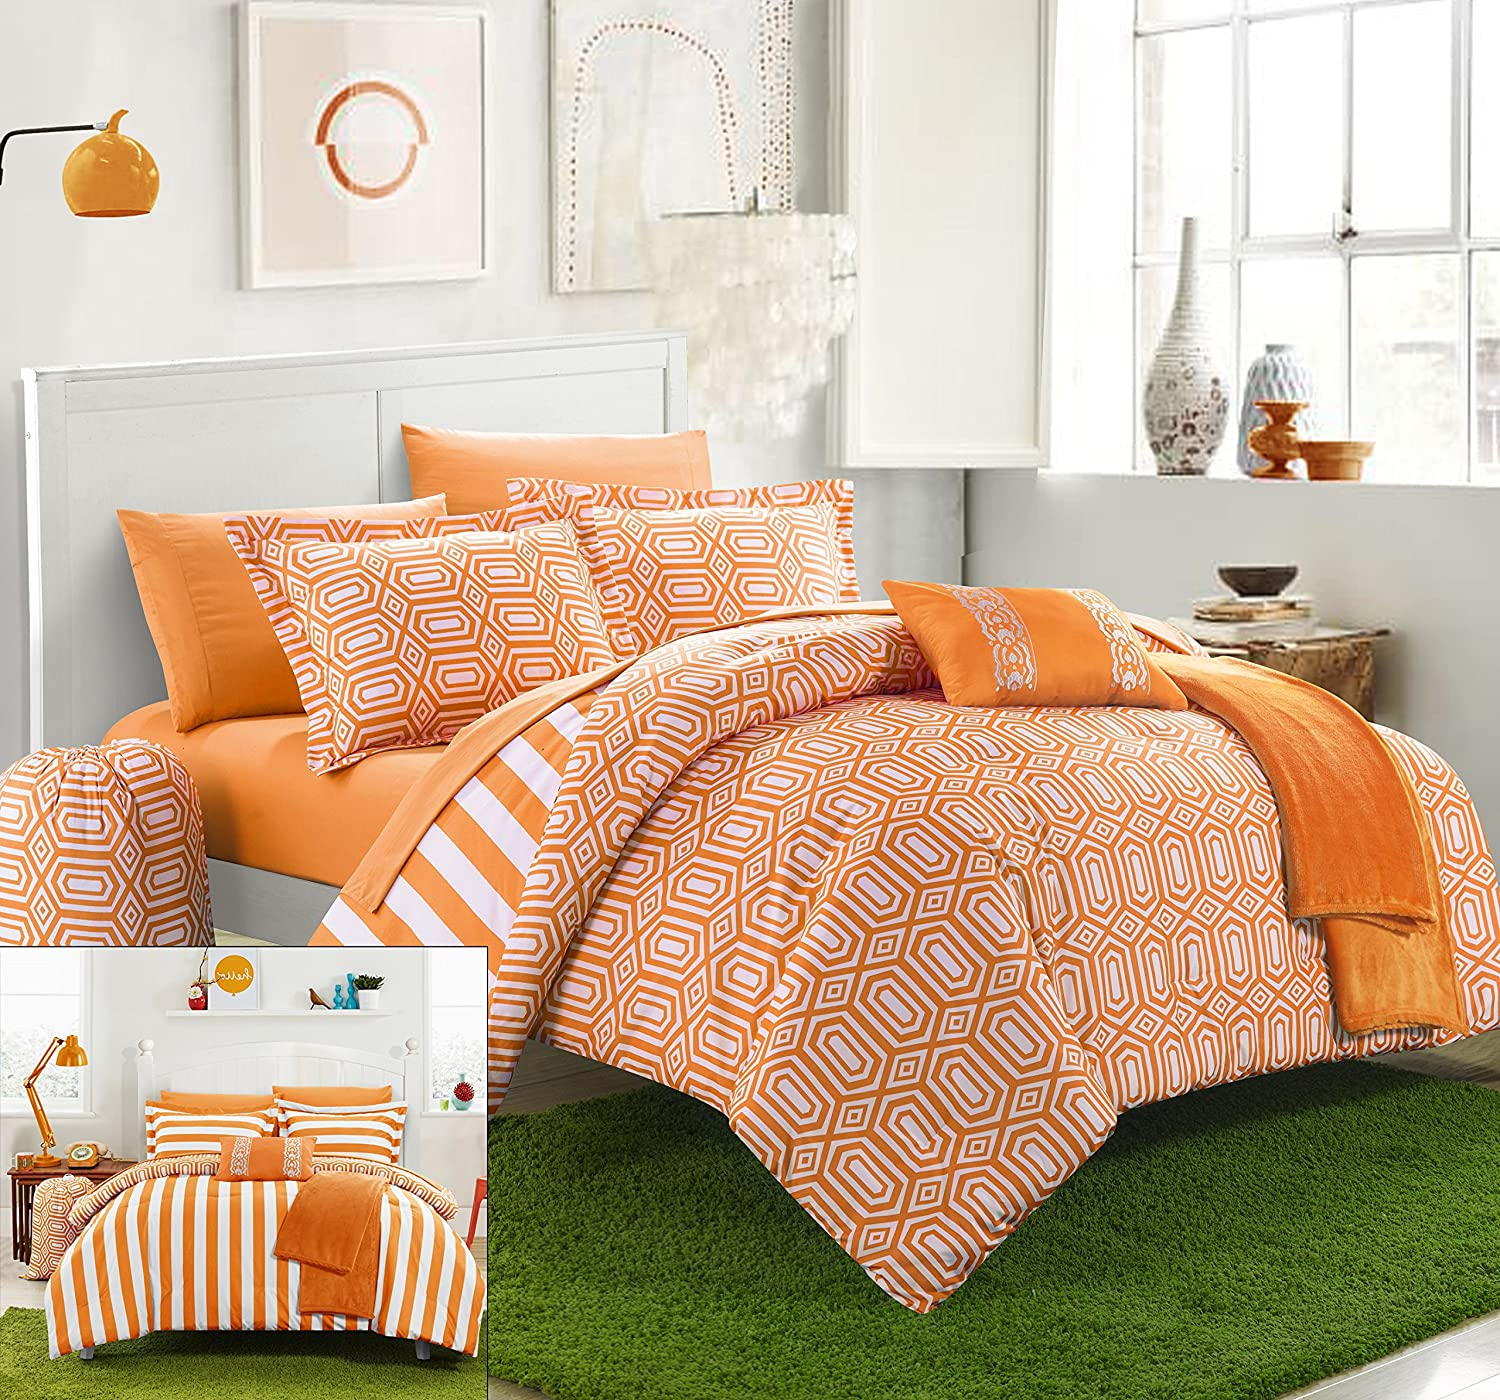 Geometric and Striped Comforter Sheet Set, Twin X-Long, Orange